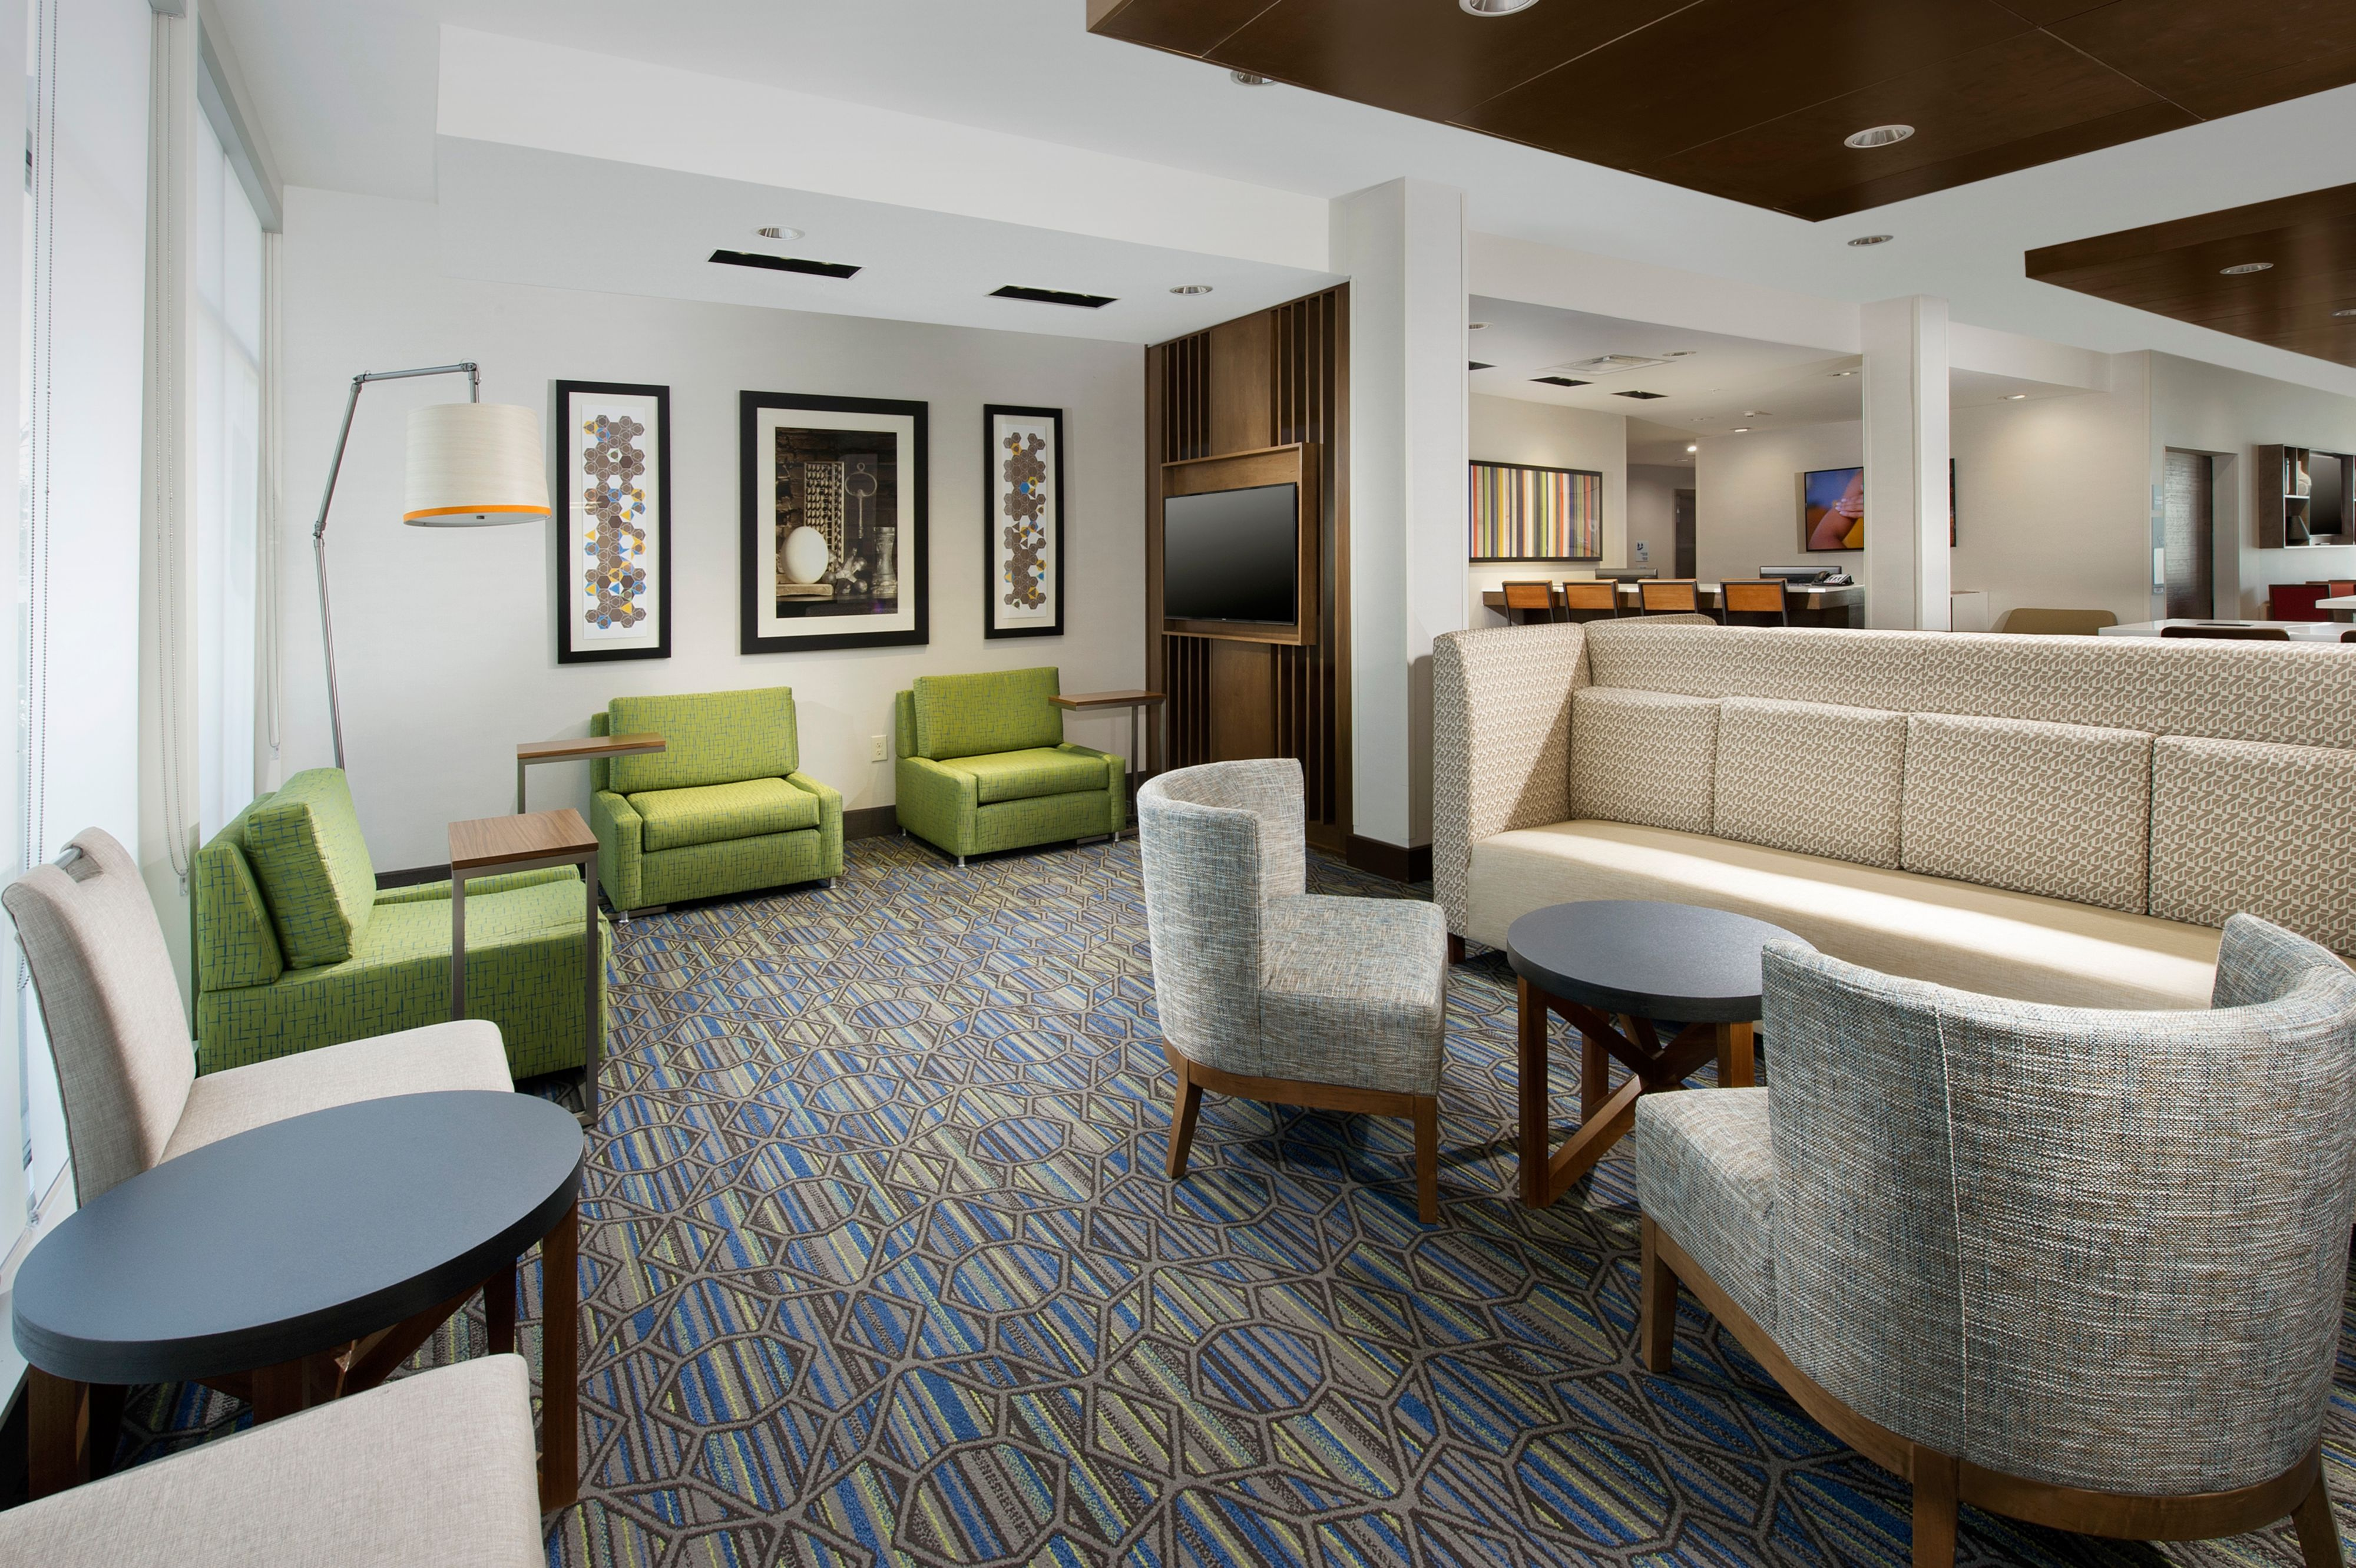 Holiday Inn Express & Suites New Braunfels image 3